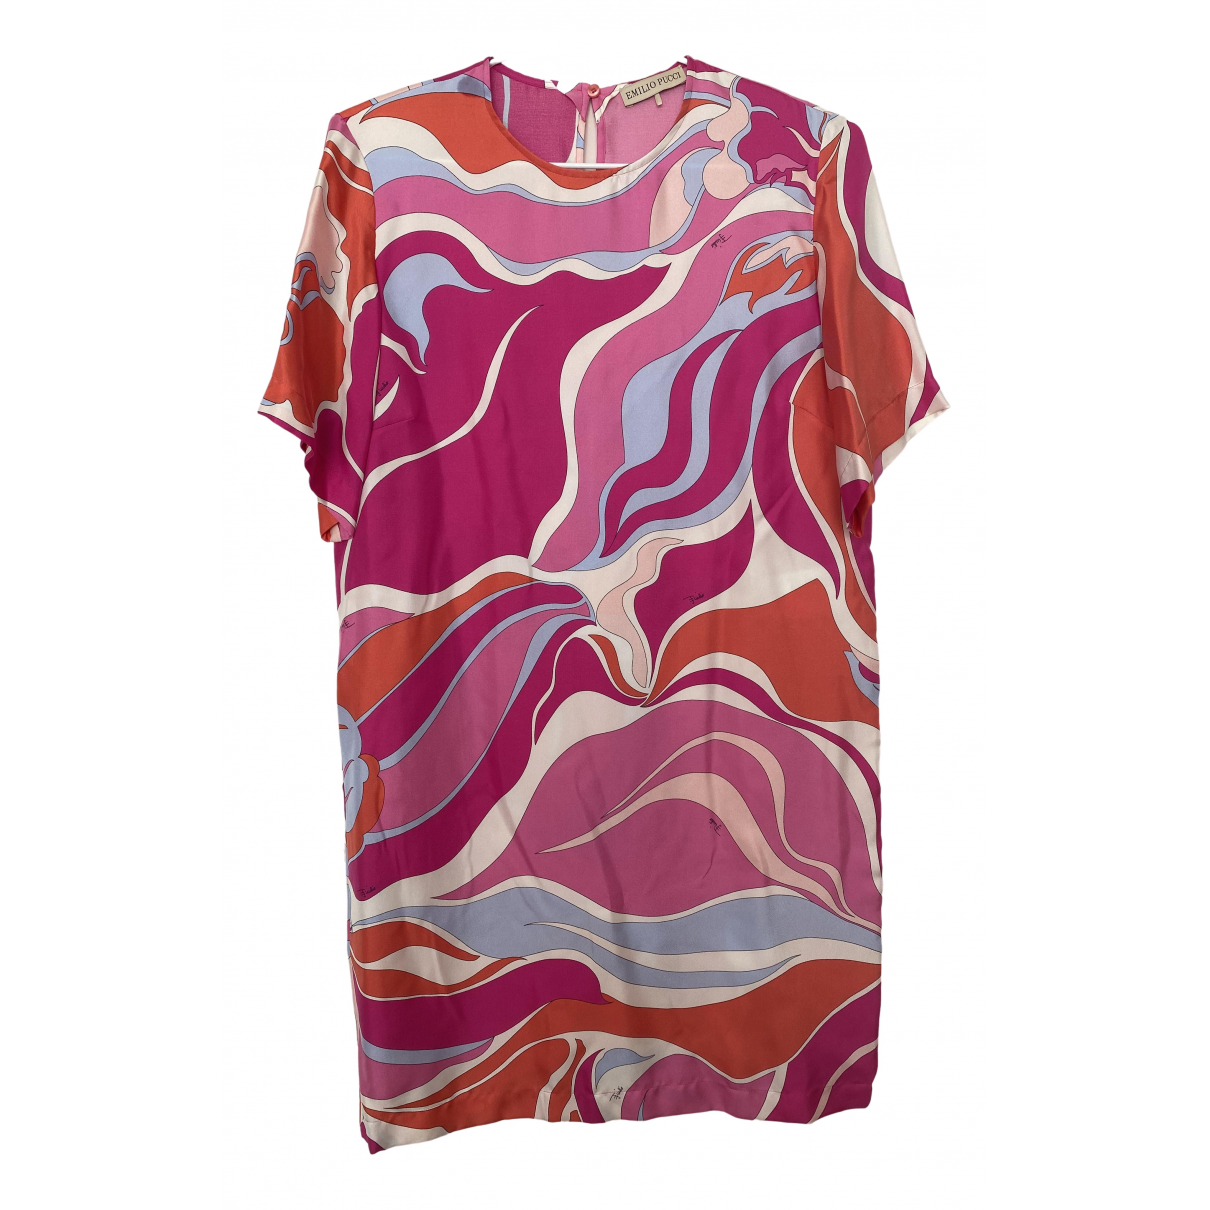 Emilio Pucci \N Multicolour Silk dress for Women 40 IT